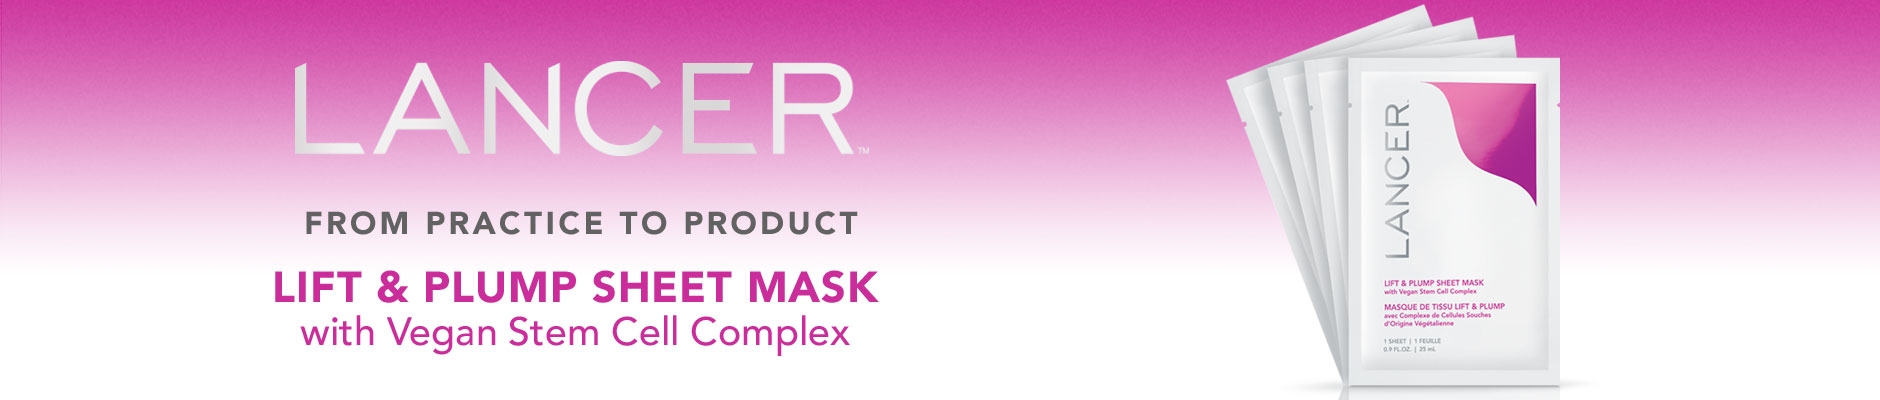 Lancer: From Practice to Product - Lift & plump sheet mask with vegan stem cell complex